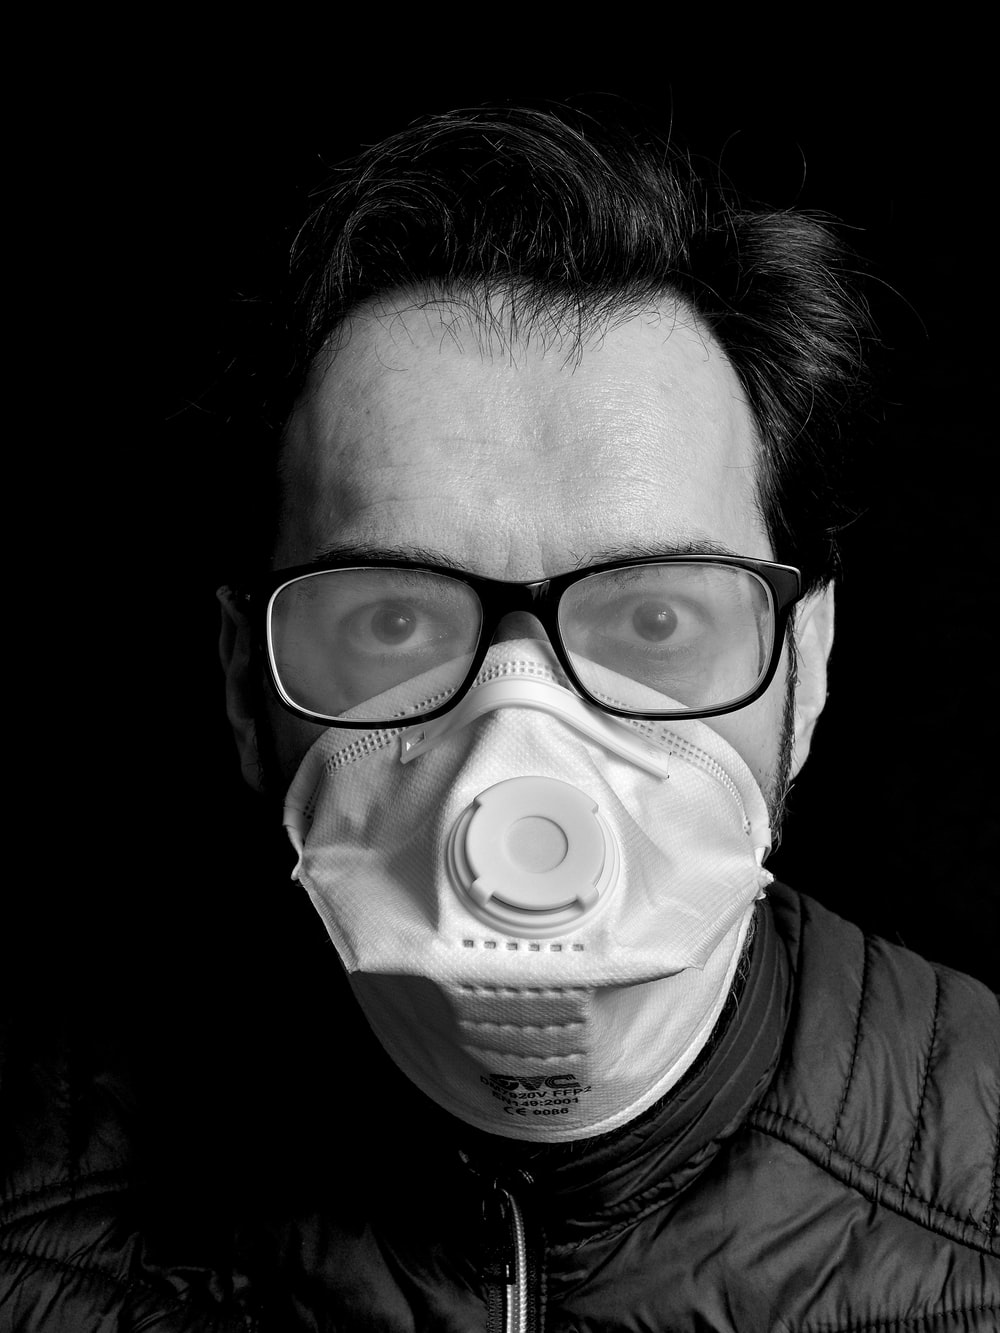 grayscale photo of person wearing eye mask